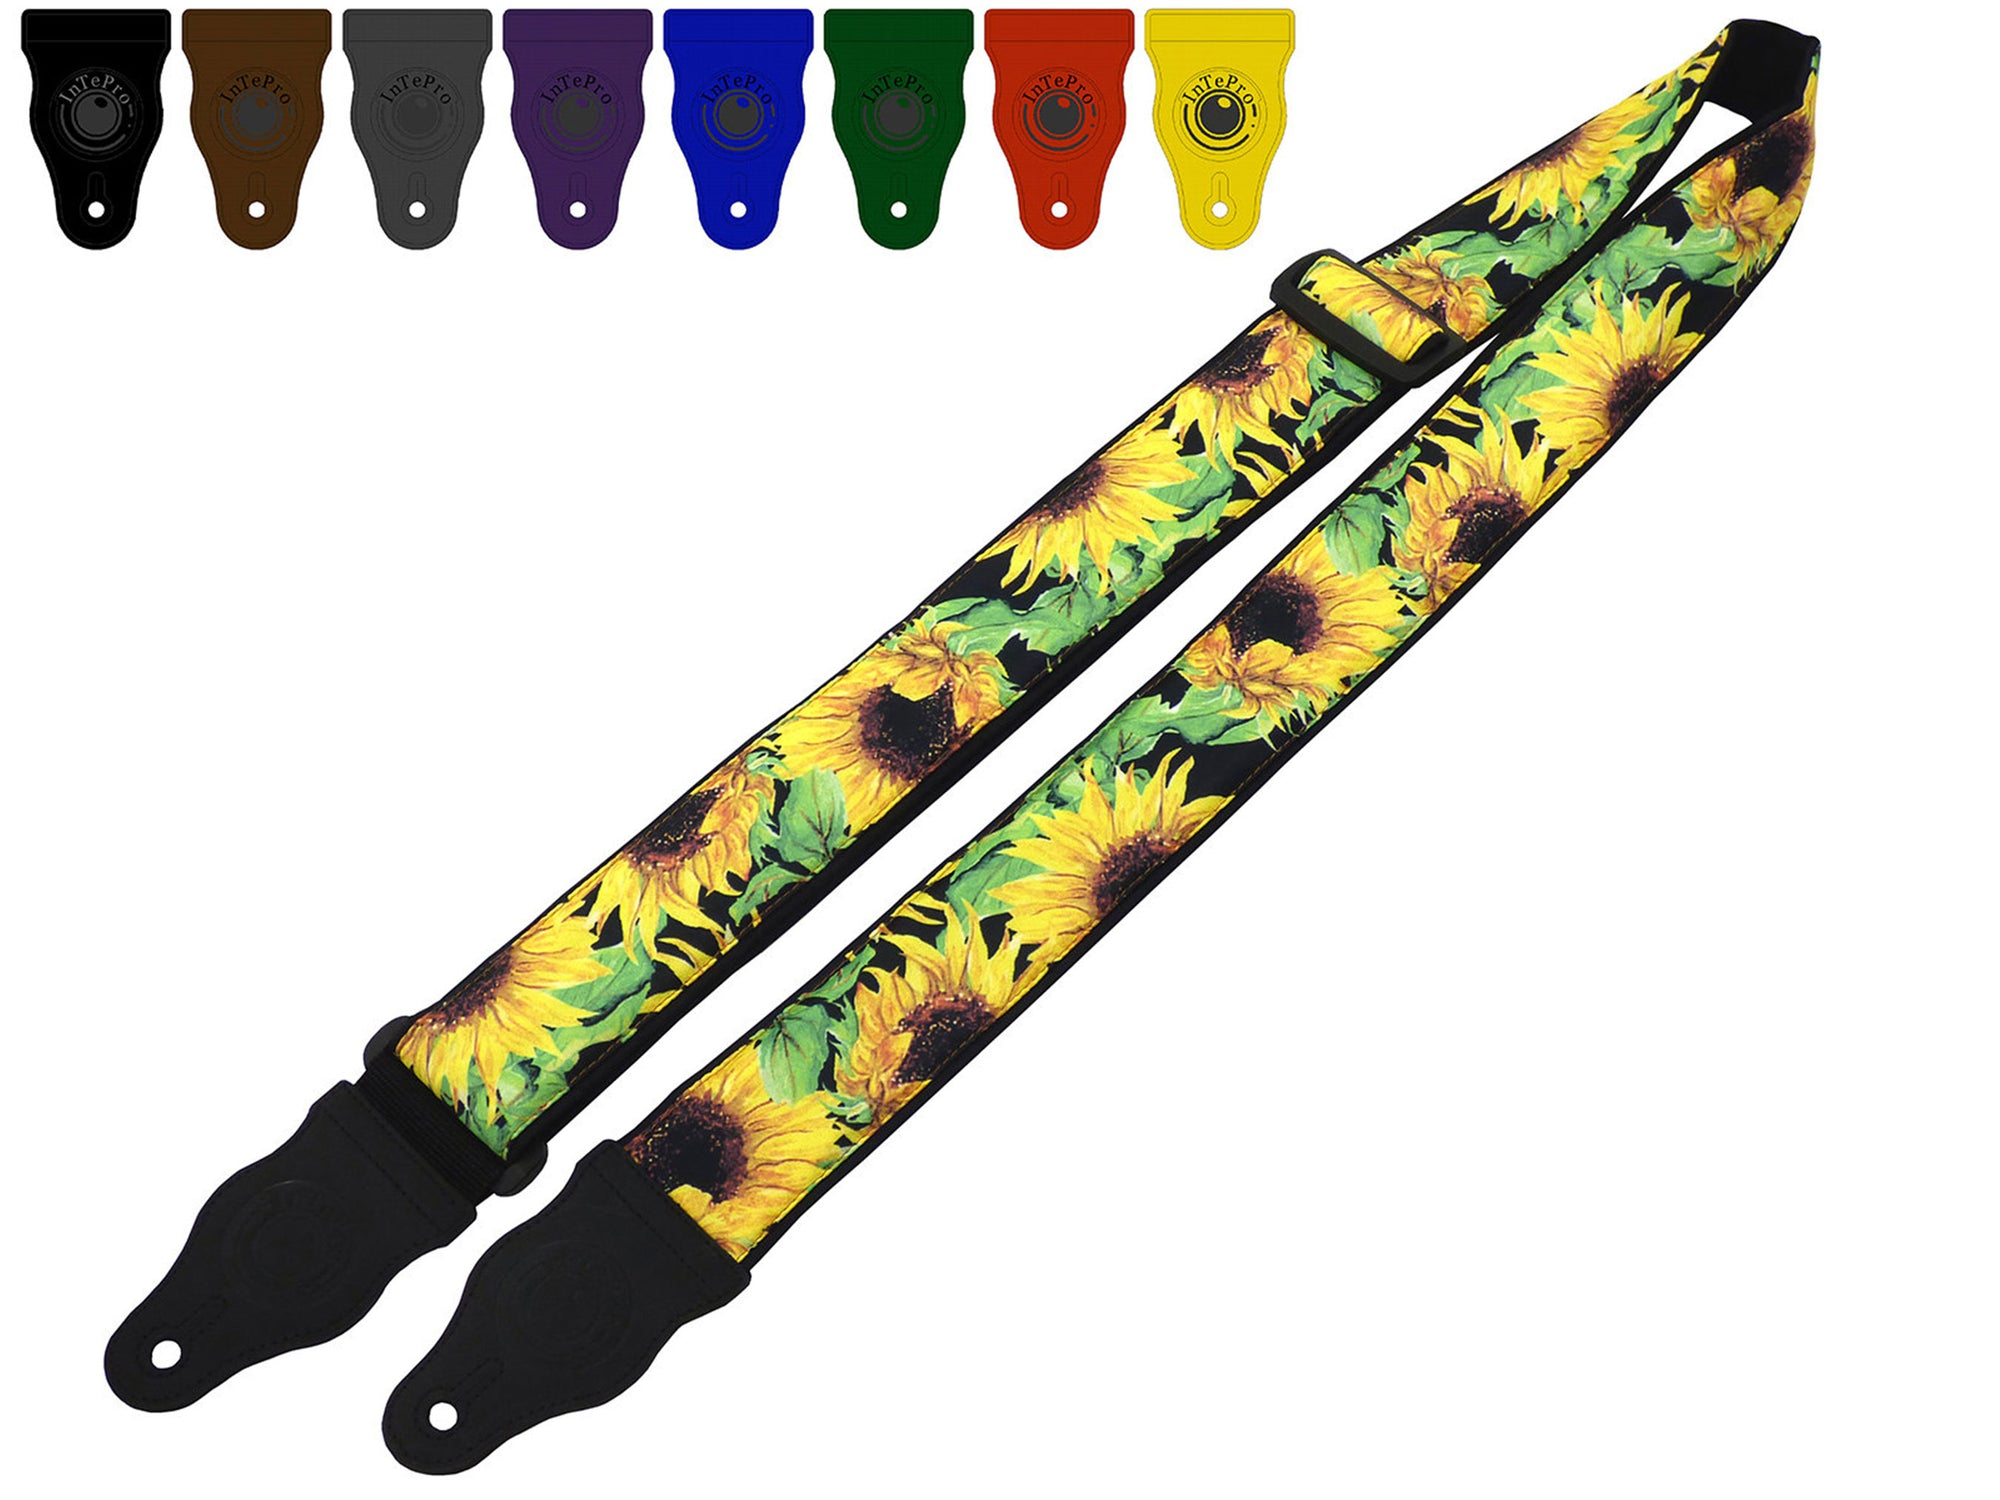 Guitar strap with sunflowers design for electric, acoustic, bass and other guitars by InTePro.